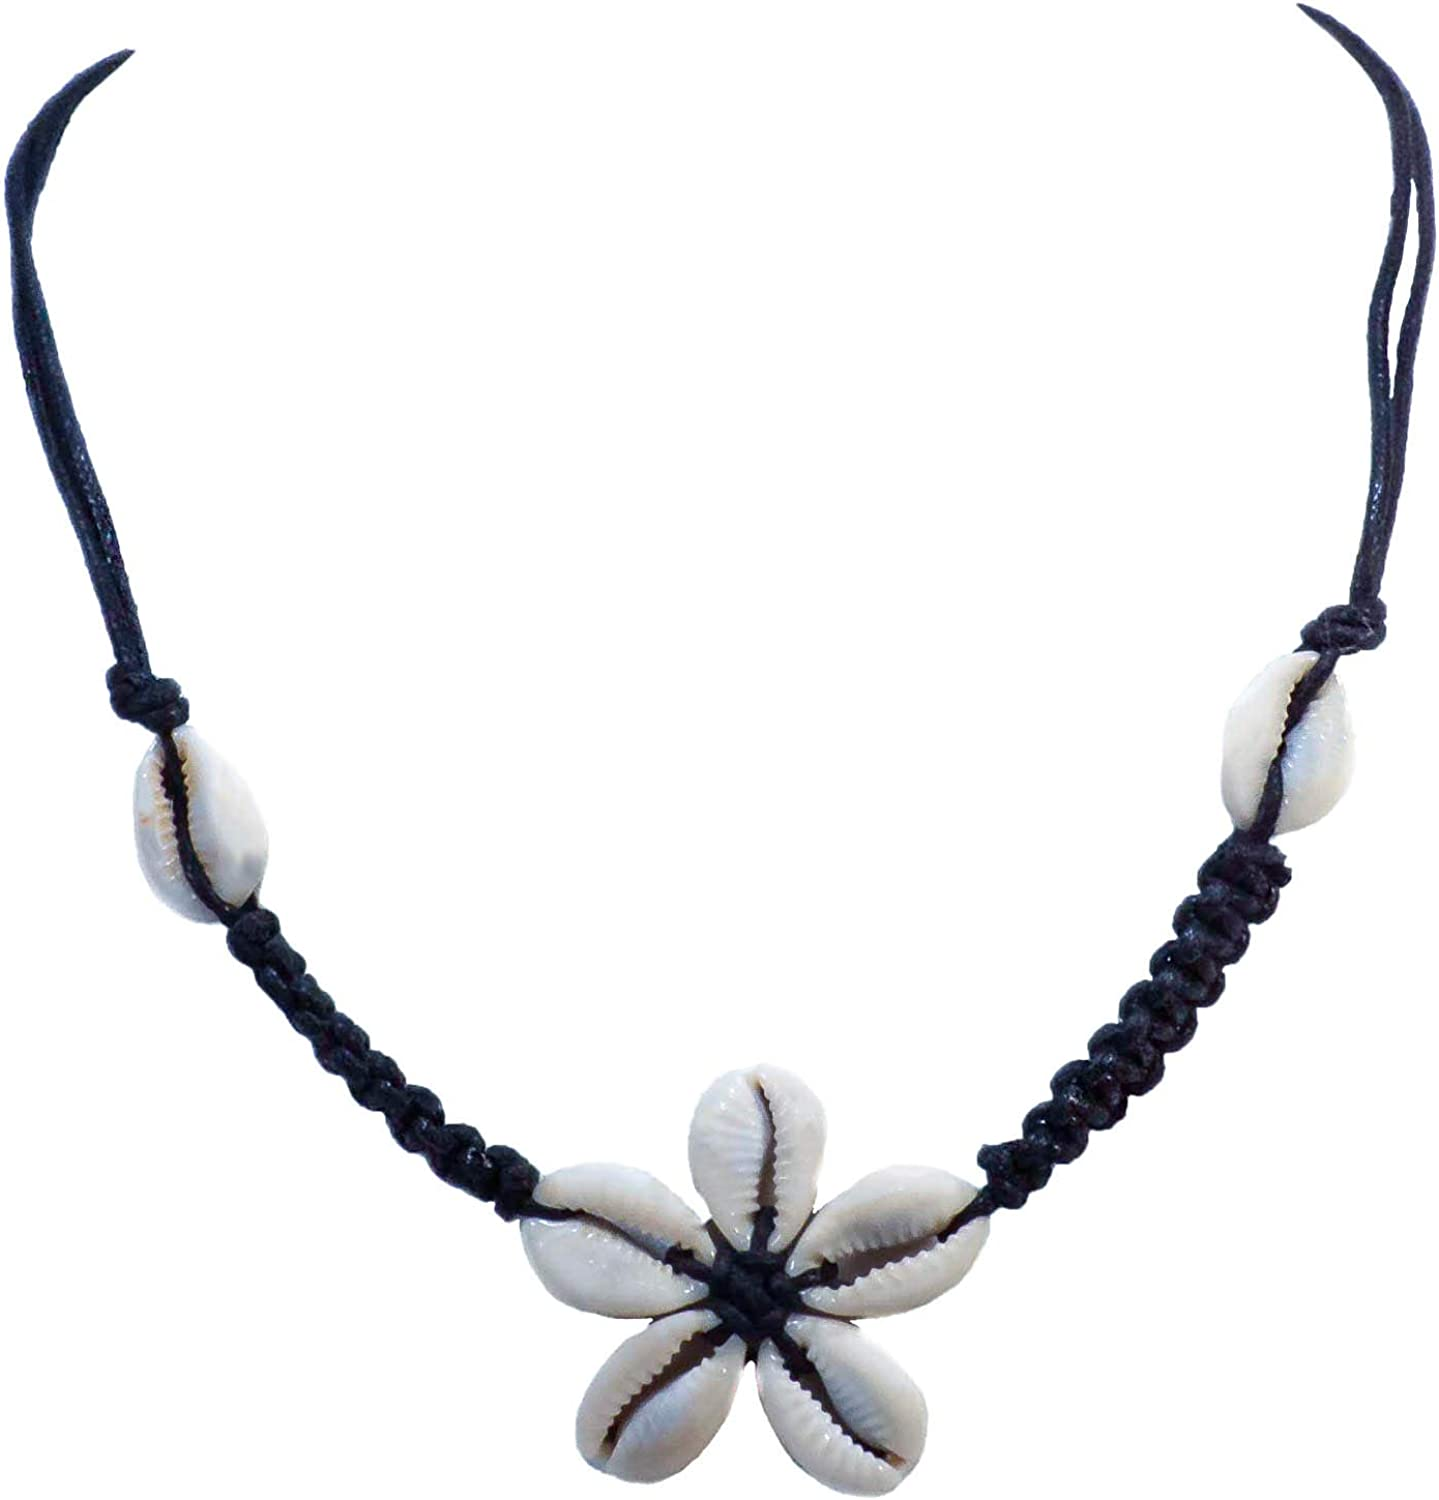 BlueRica Braided Black Cord Choker Necklace with Cowrie Shell Flower Pendant